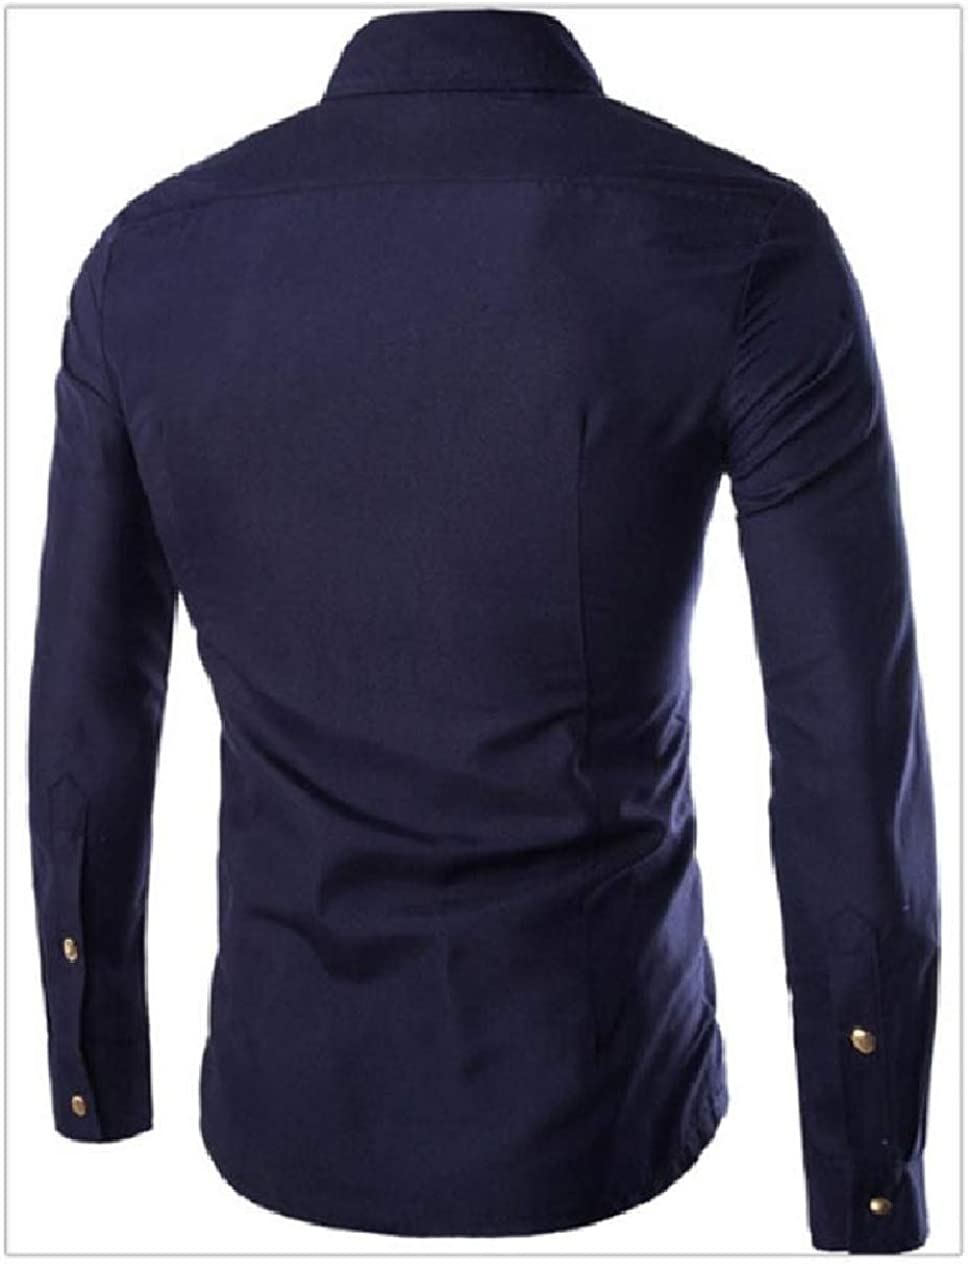 Whitive Mens Solid-Colored Long Sleeve Button Down Stitch Zipper Shirts